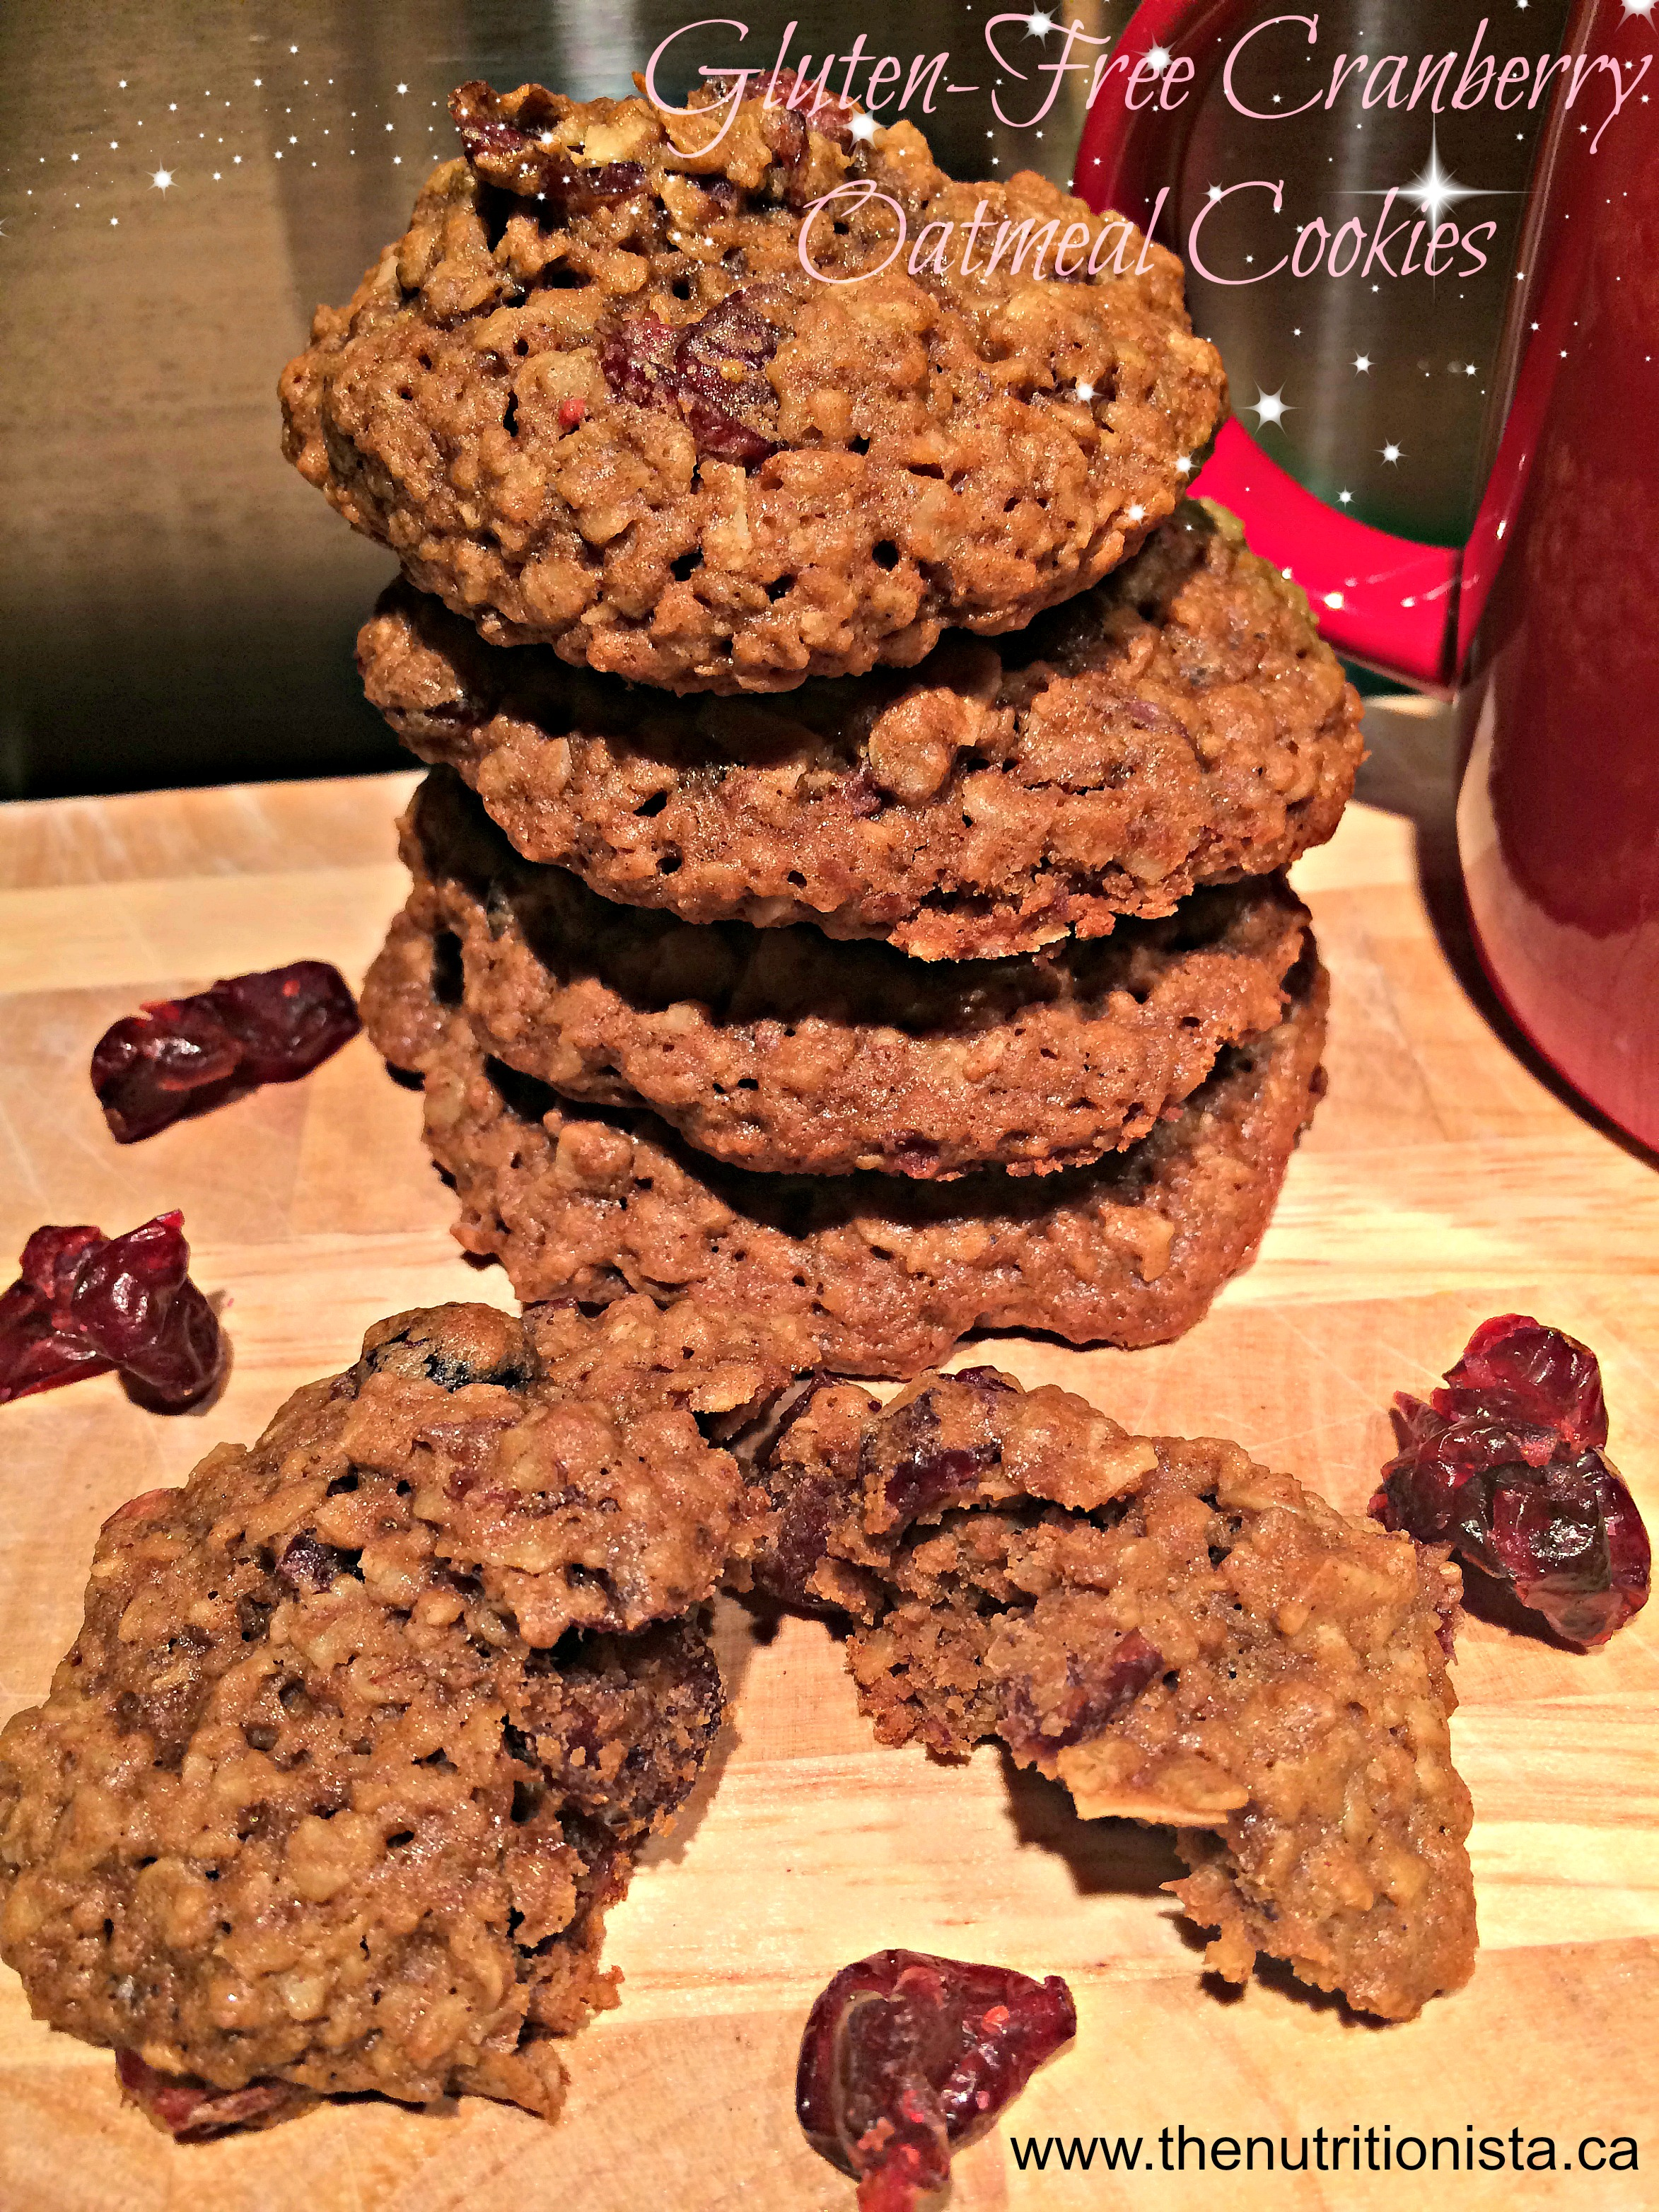 Gluten free cranberry oatmeal cookies